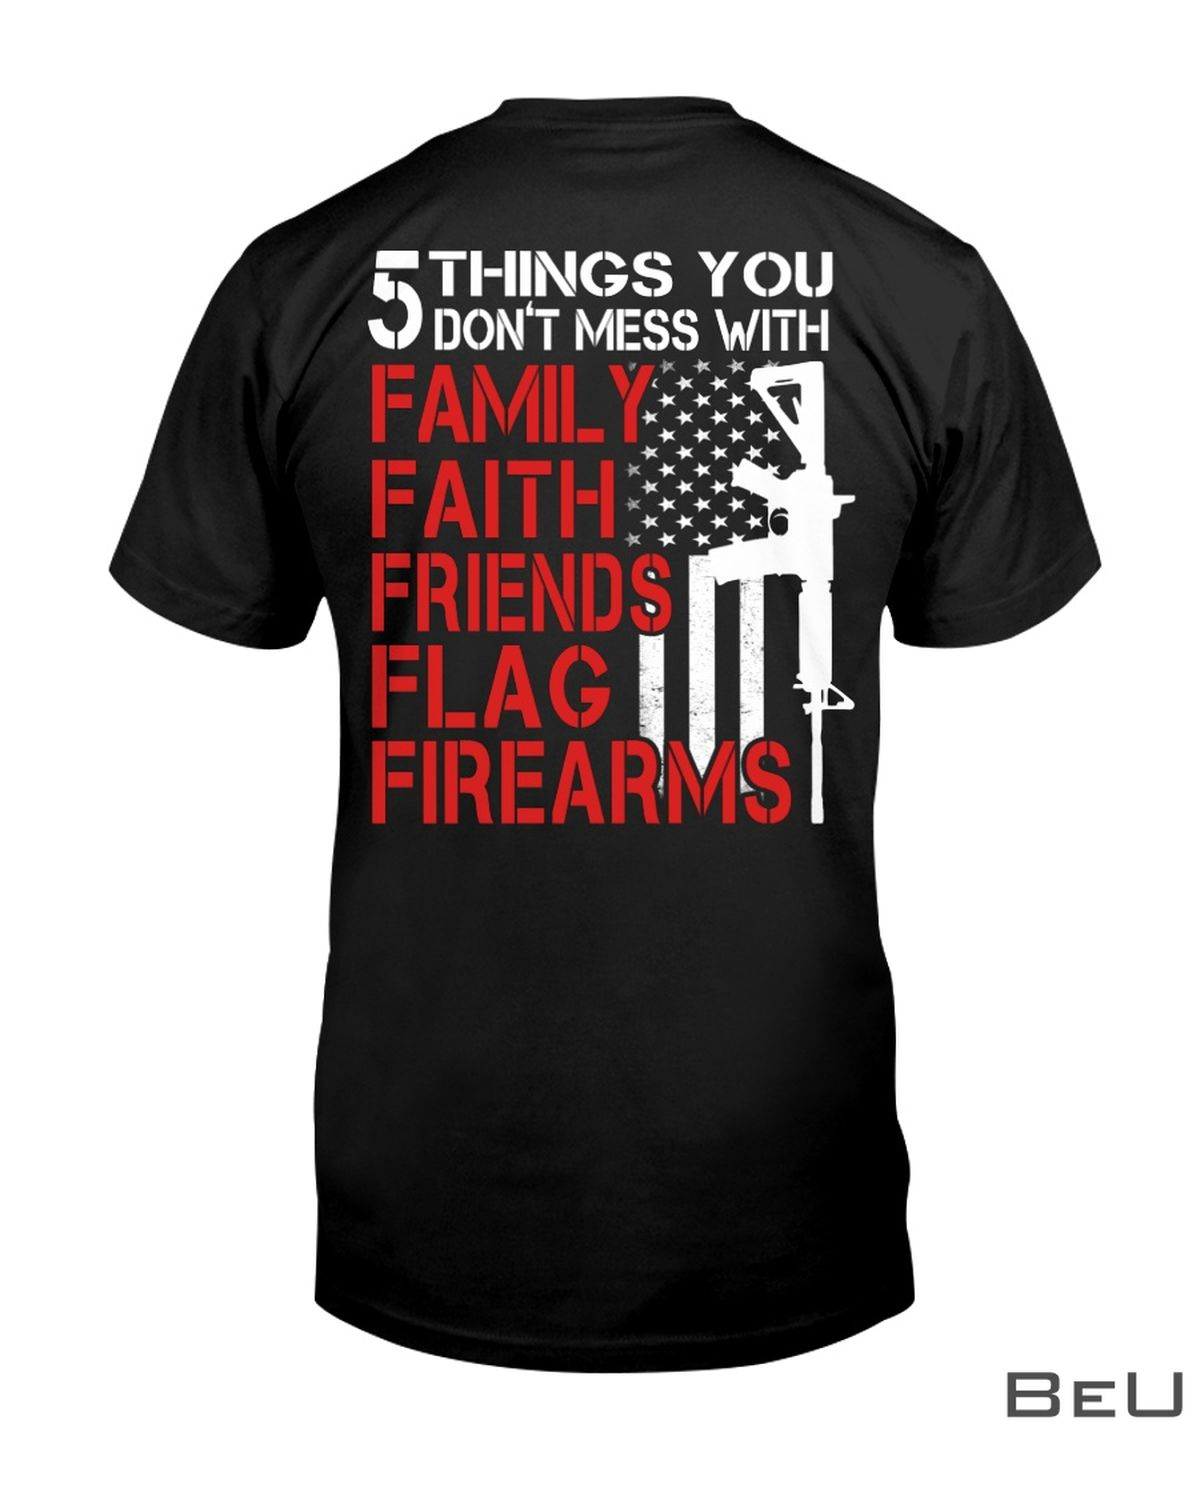 5 Things You Don't Mess With Family Faith Friends Flag Firearms Shirt, hoodie, tank top